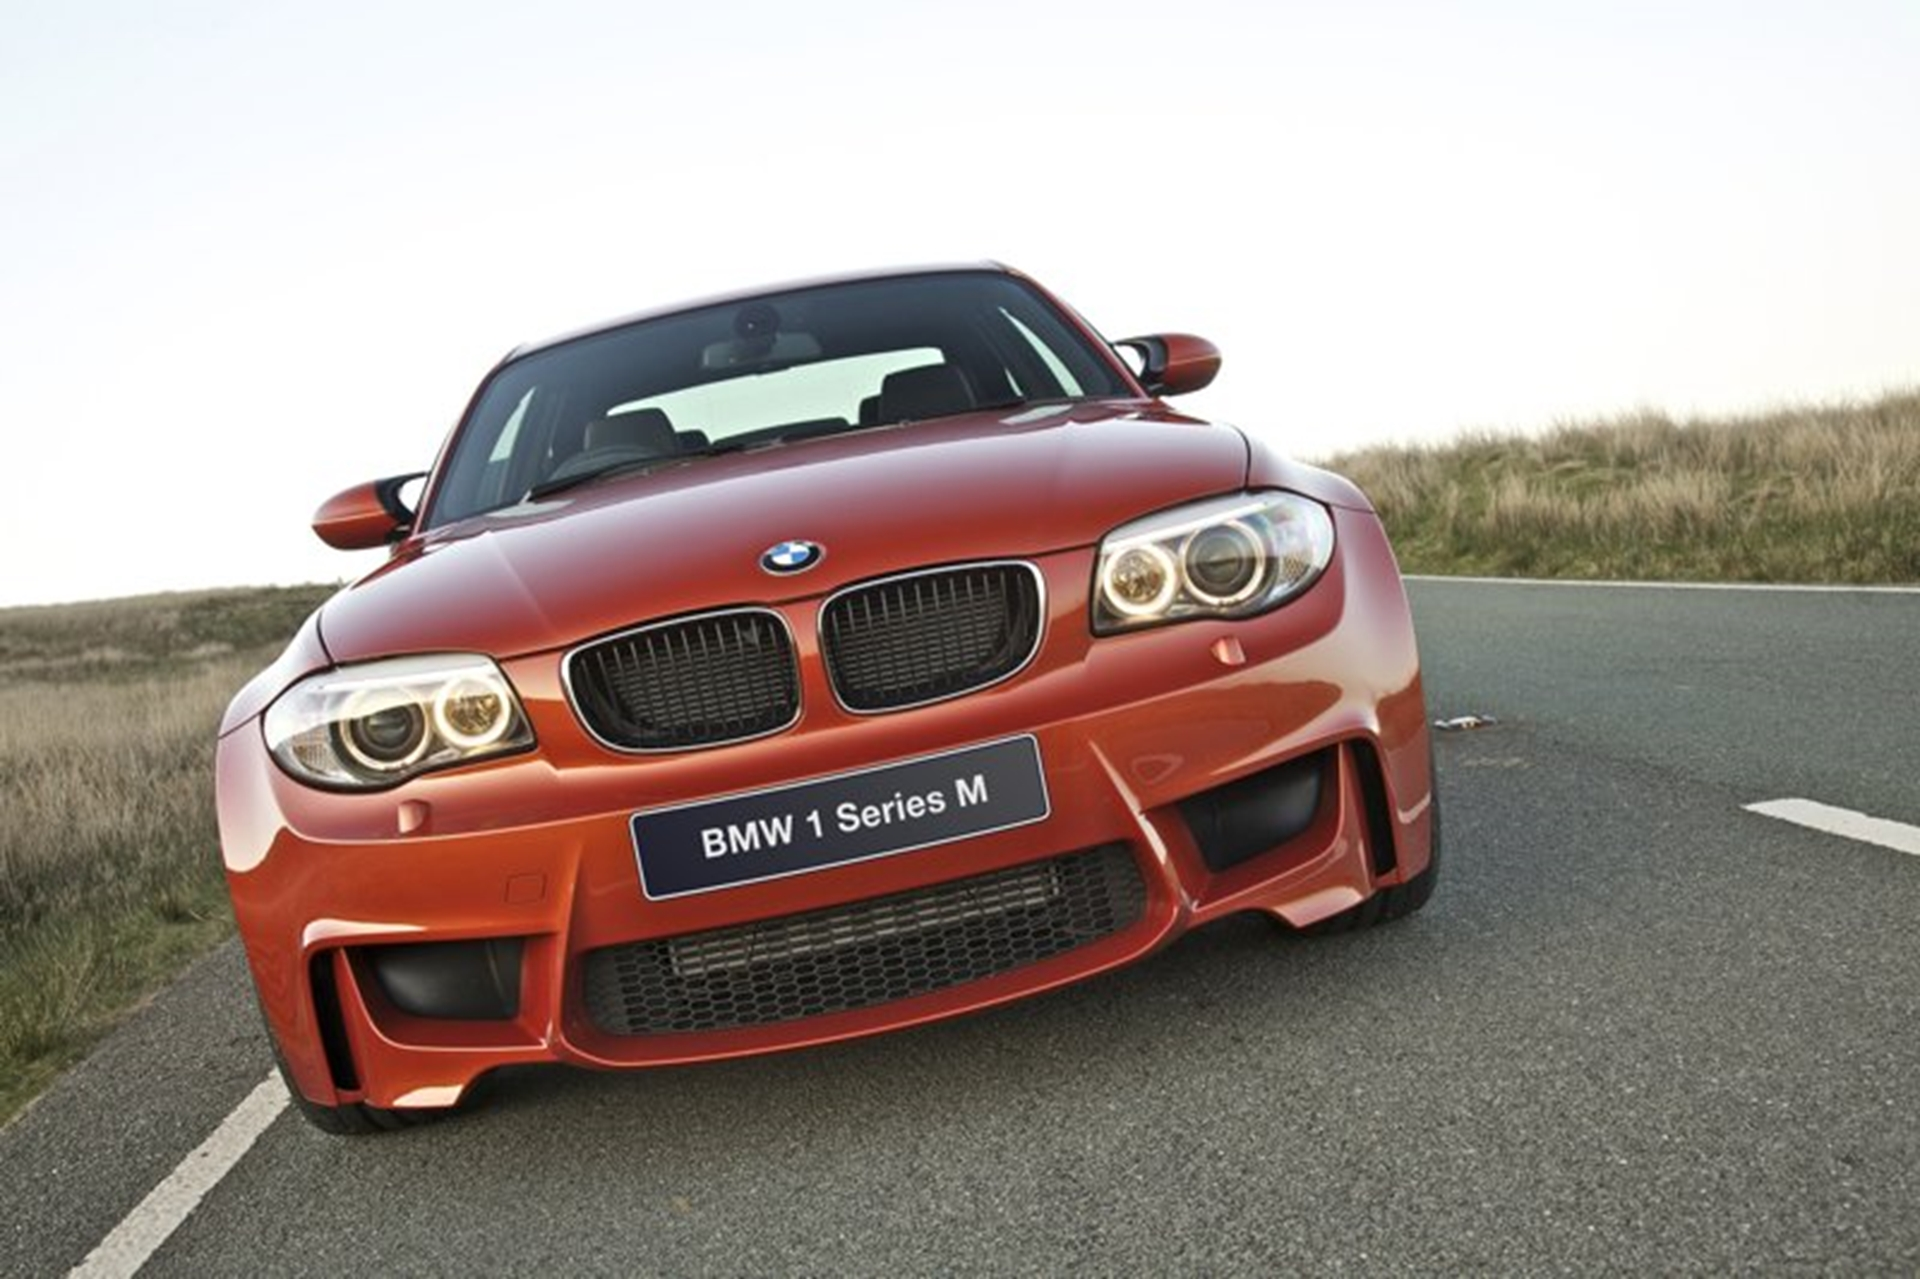 The new BMW 1 Series M Coupe